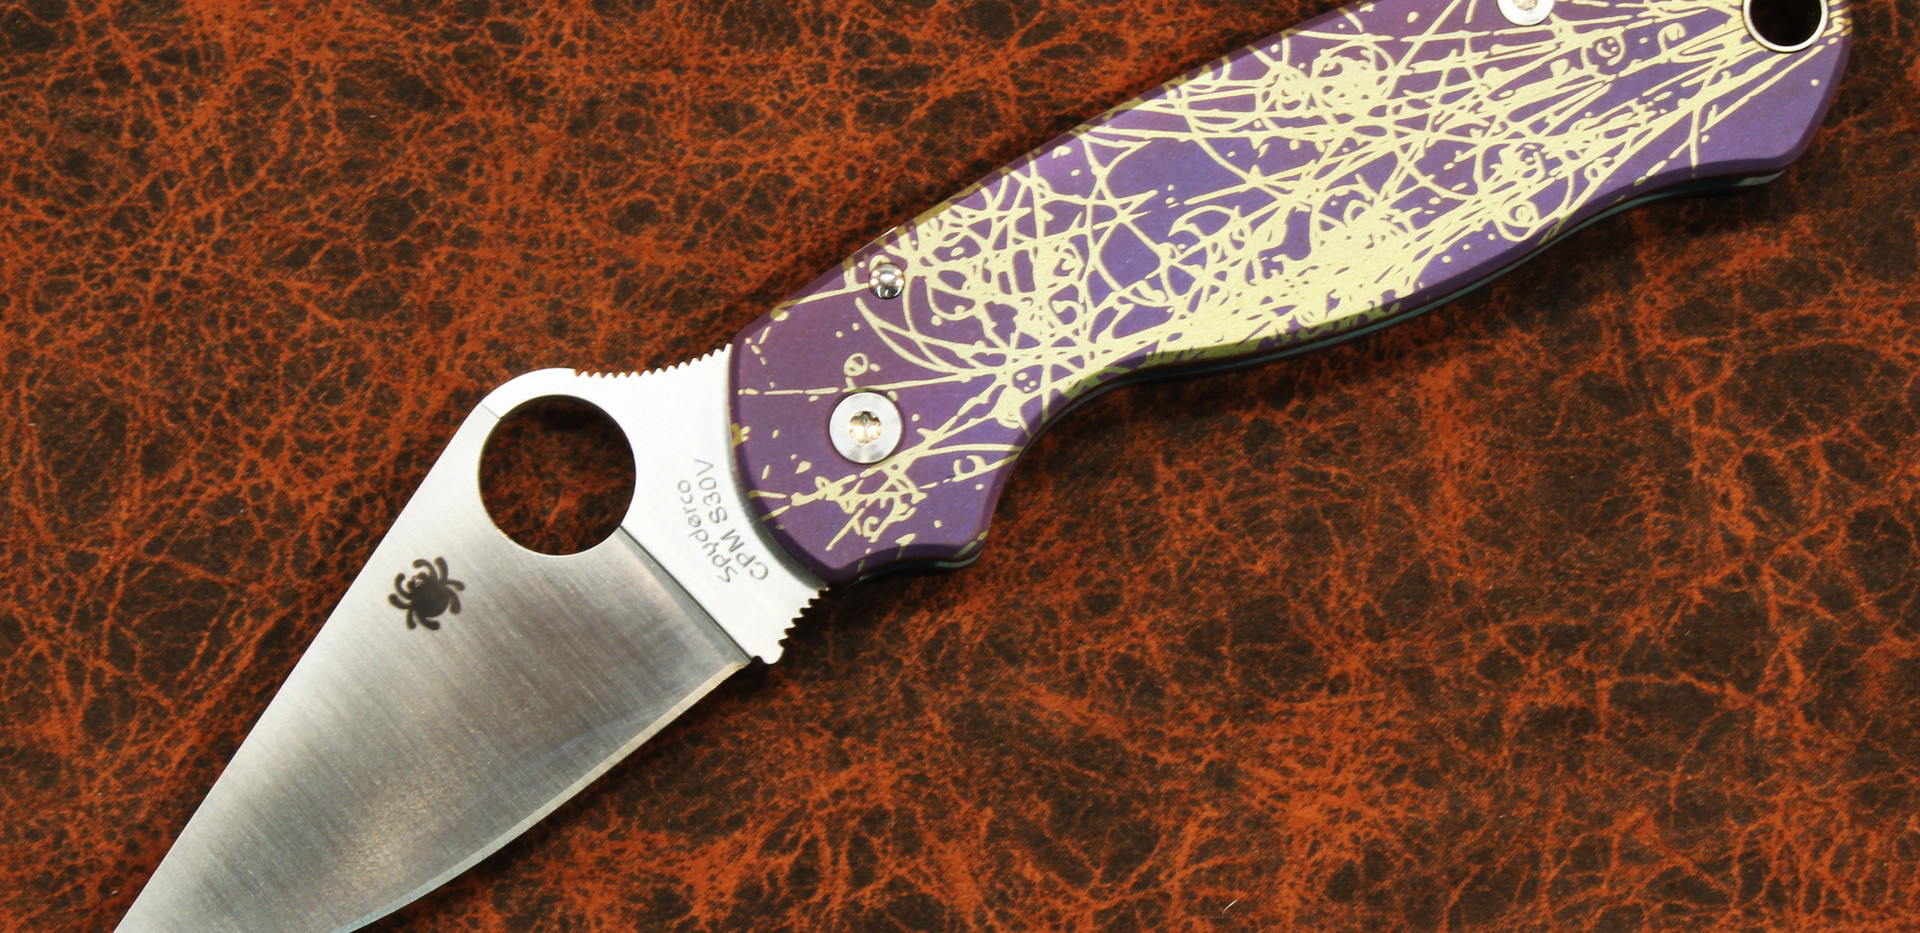 Spyderco Paramilitary Particle #3 pattern